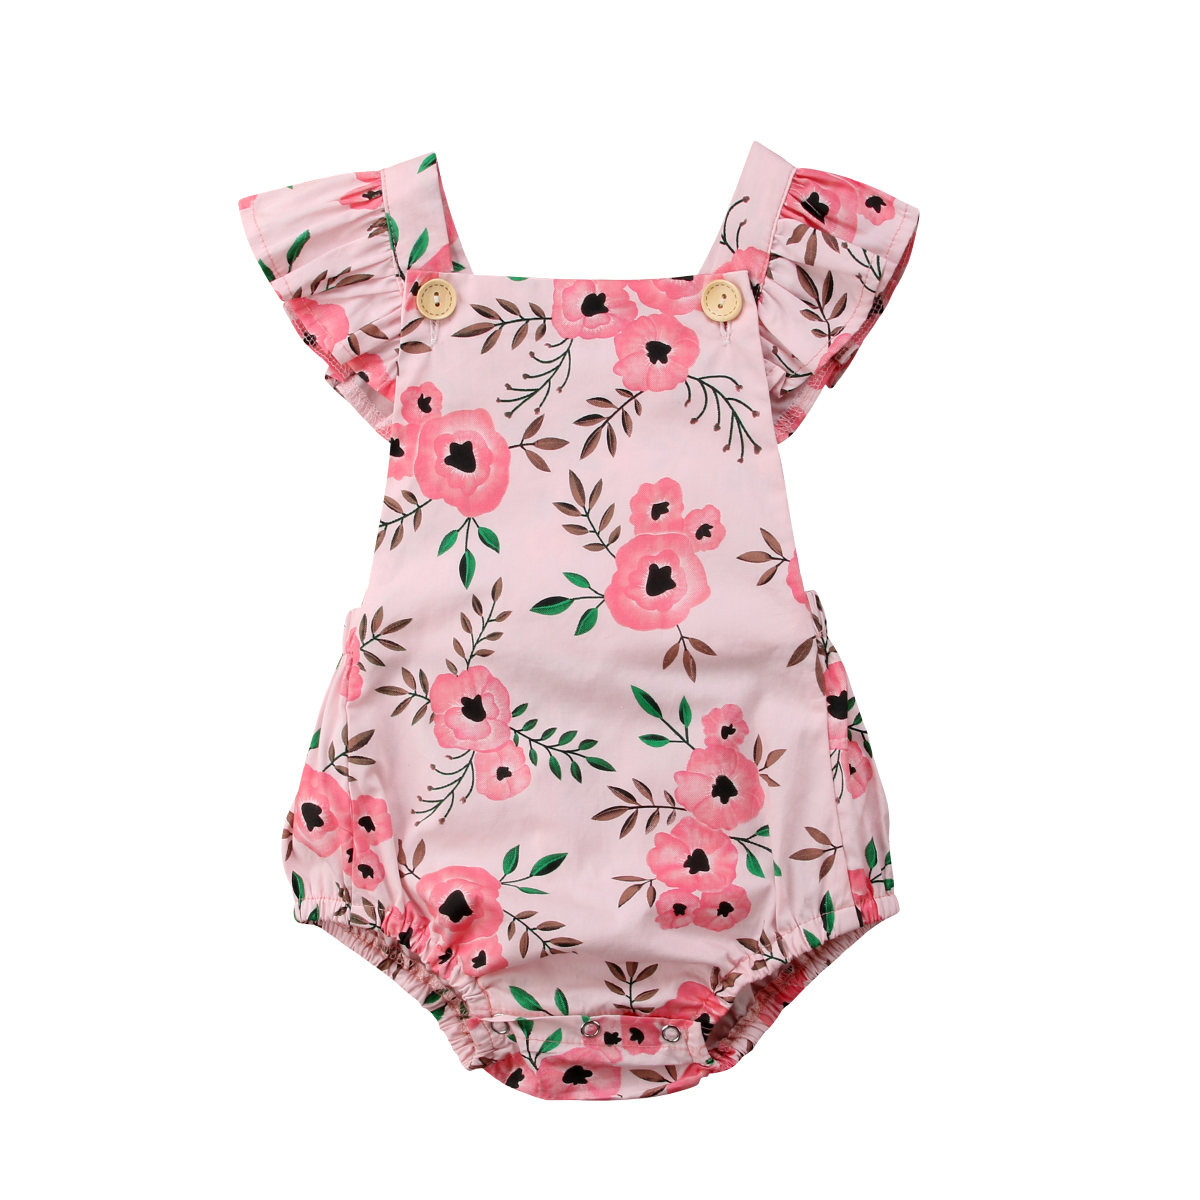 Newborn Infant Toddle Baby Girls Floral Sleeveless Jumpsuit Bodysuit Sunsuit Overall Casual Cute Clothes Baby Girl 0-24M